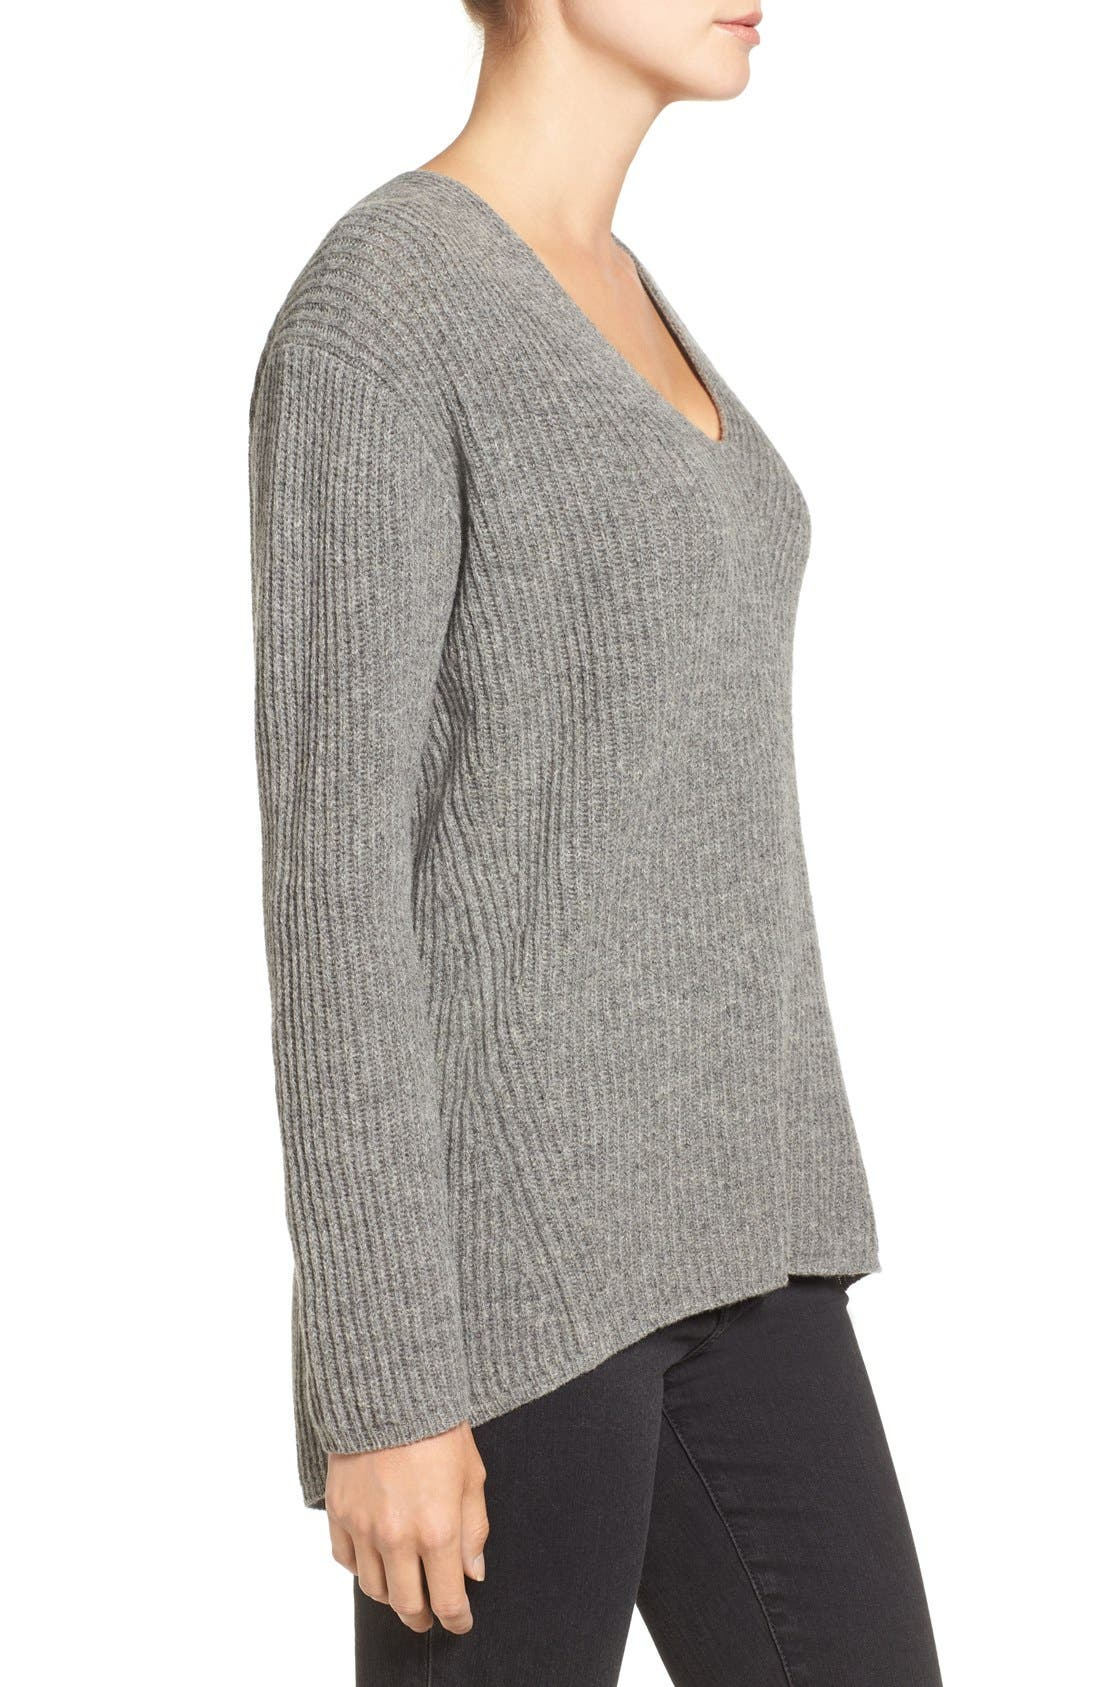 Woodside Pullover Sweater,                             Alternate thumbnail 33, color,